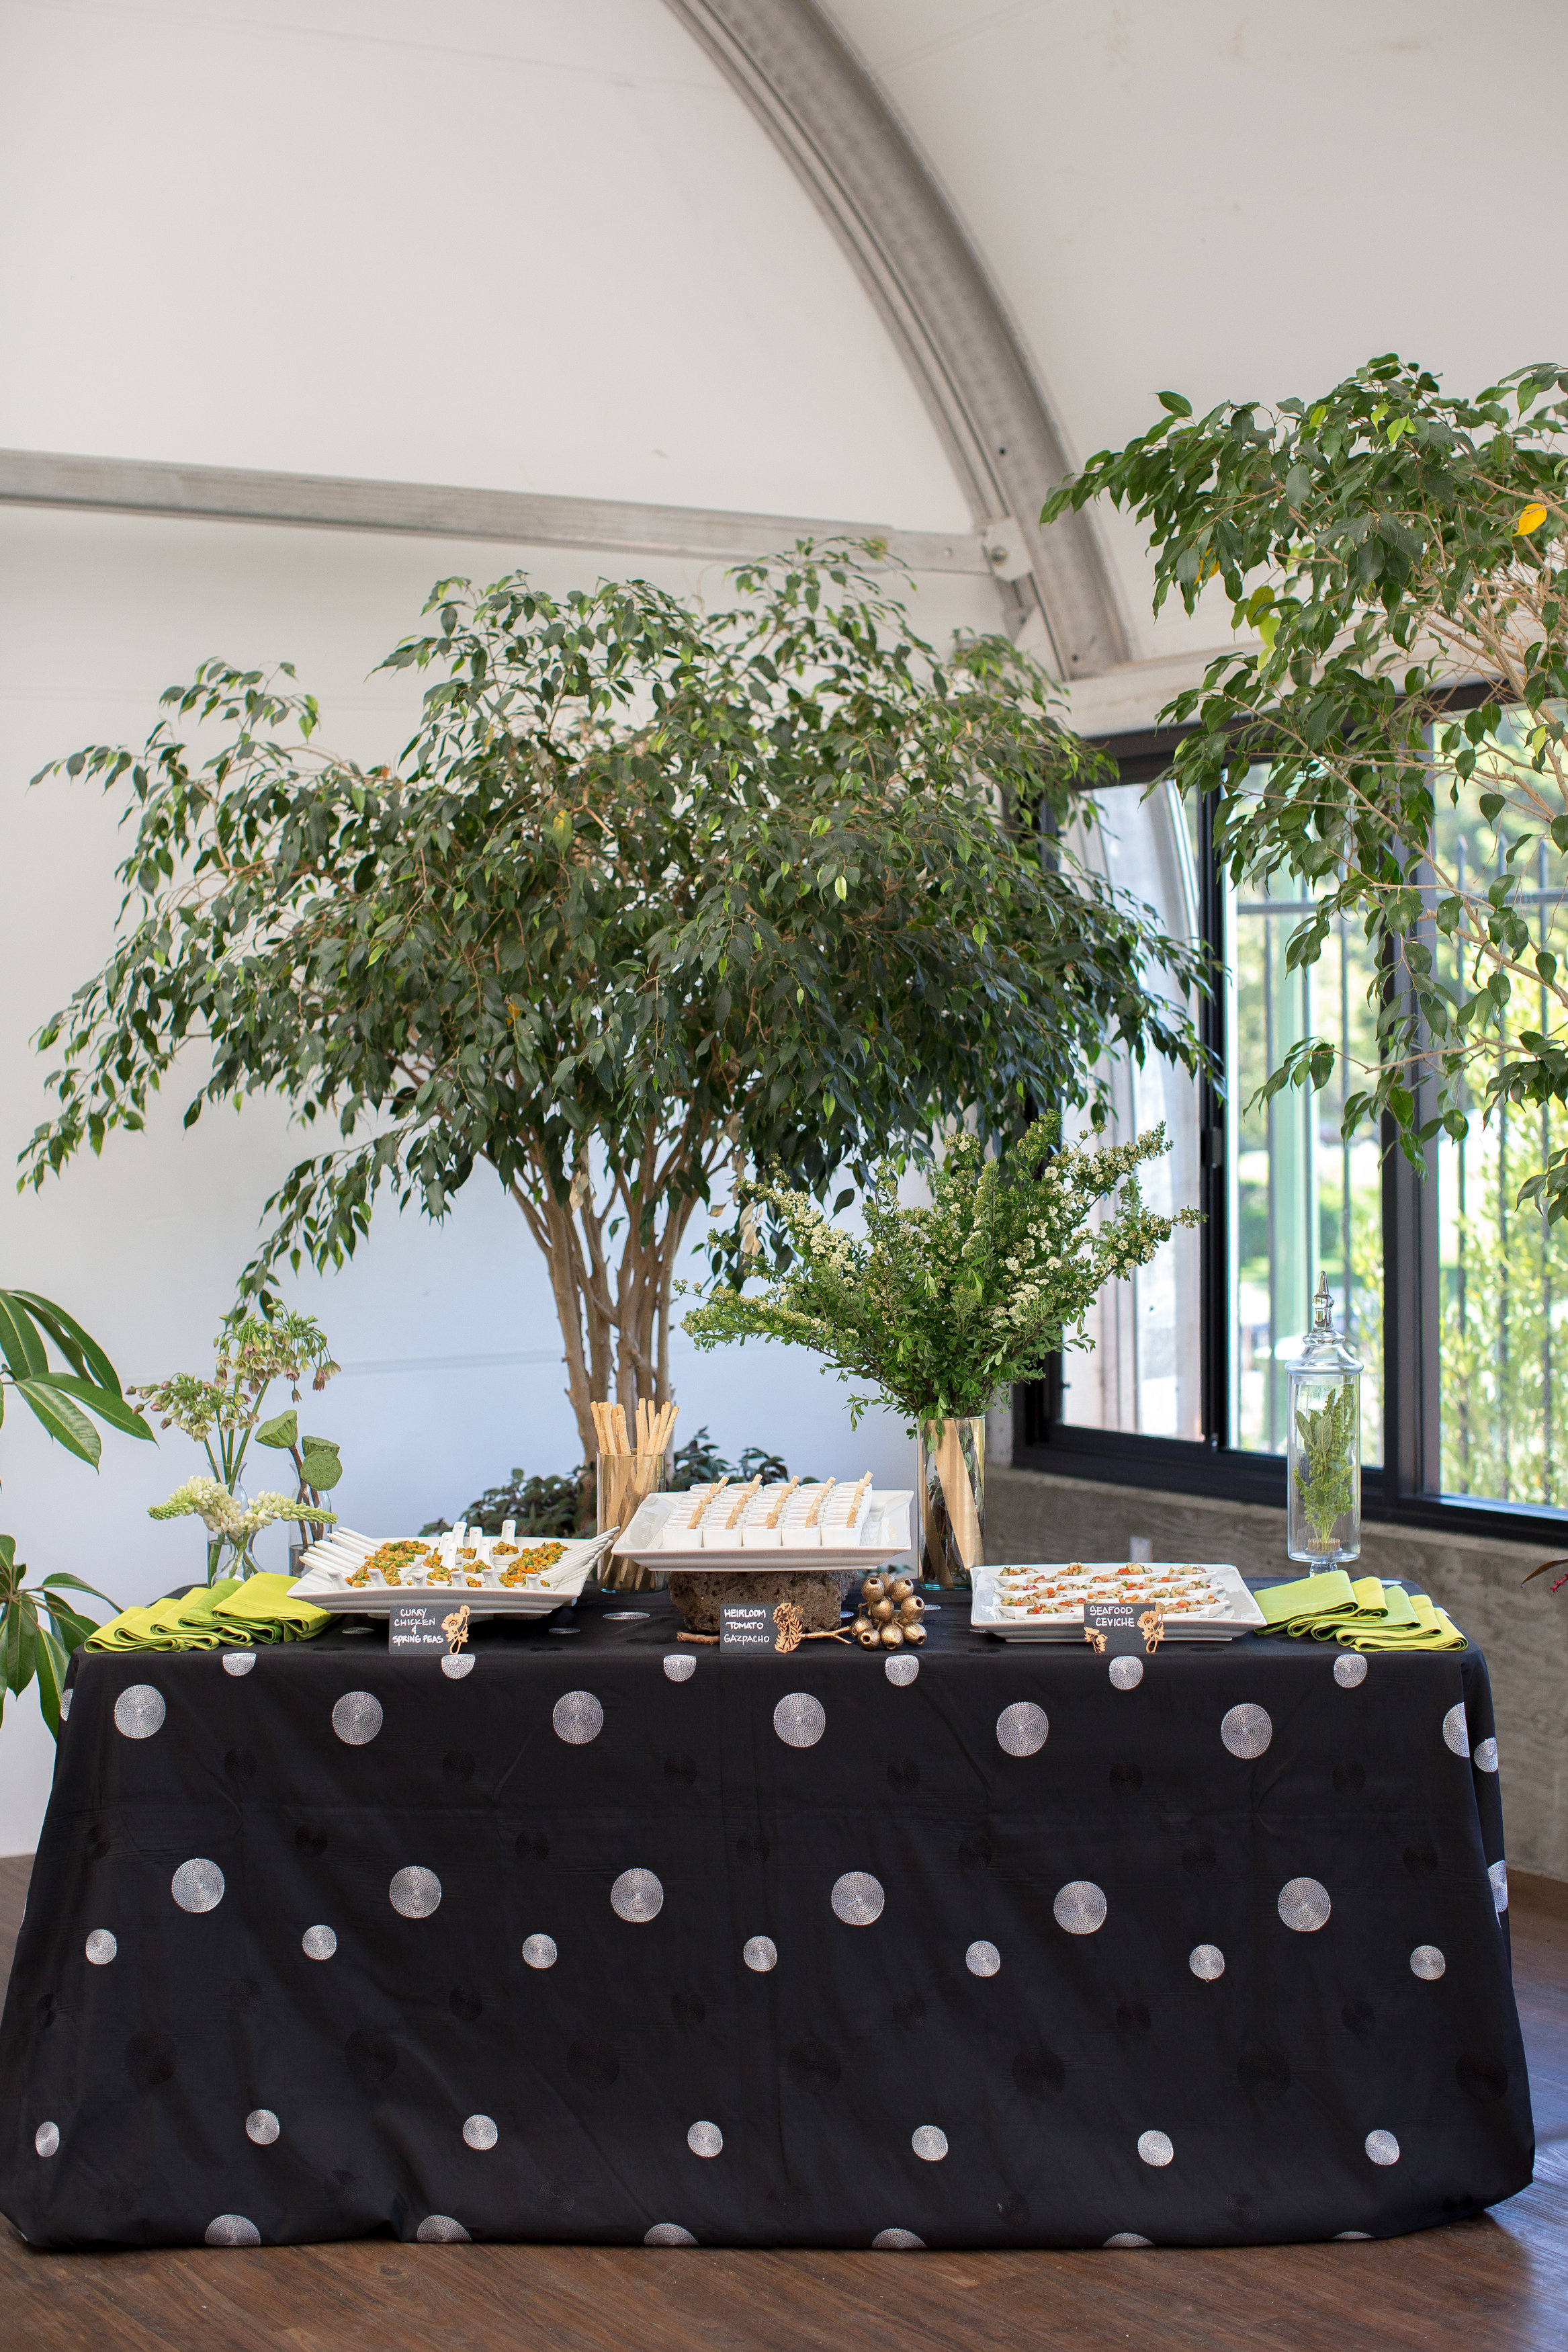 JennaBethPhotography-LGWConservatory-buffett-table-set-up-black-white.jpg